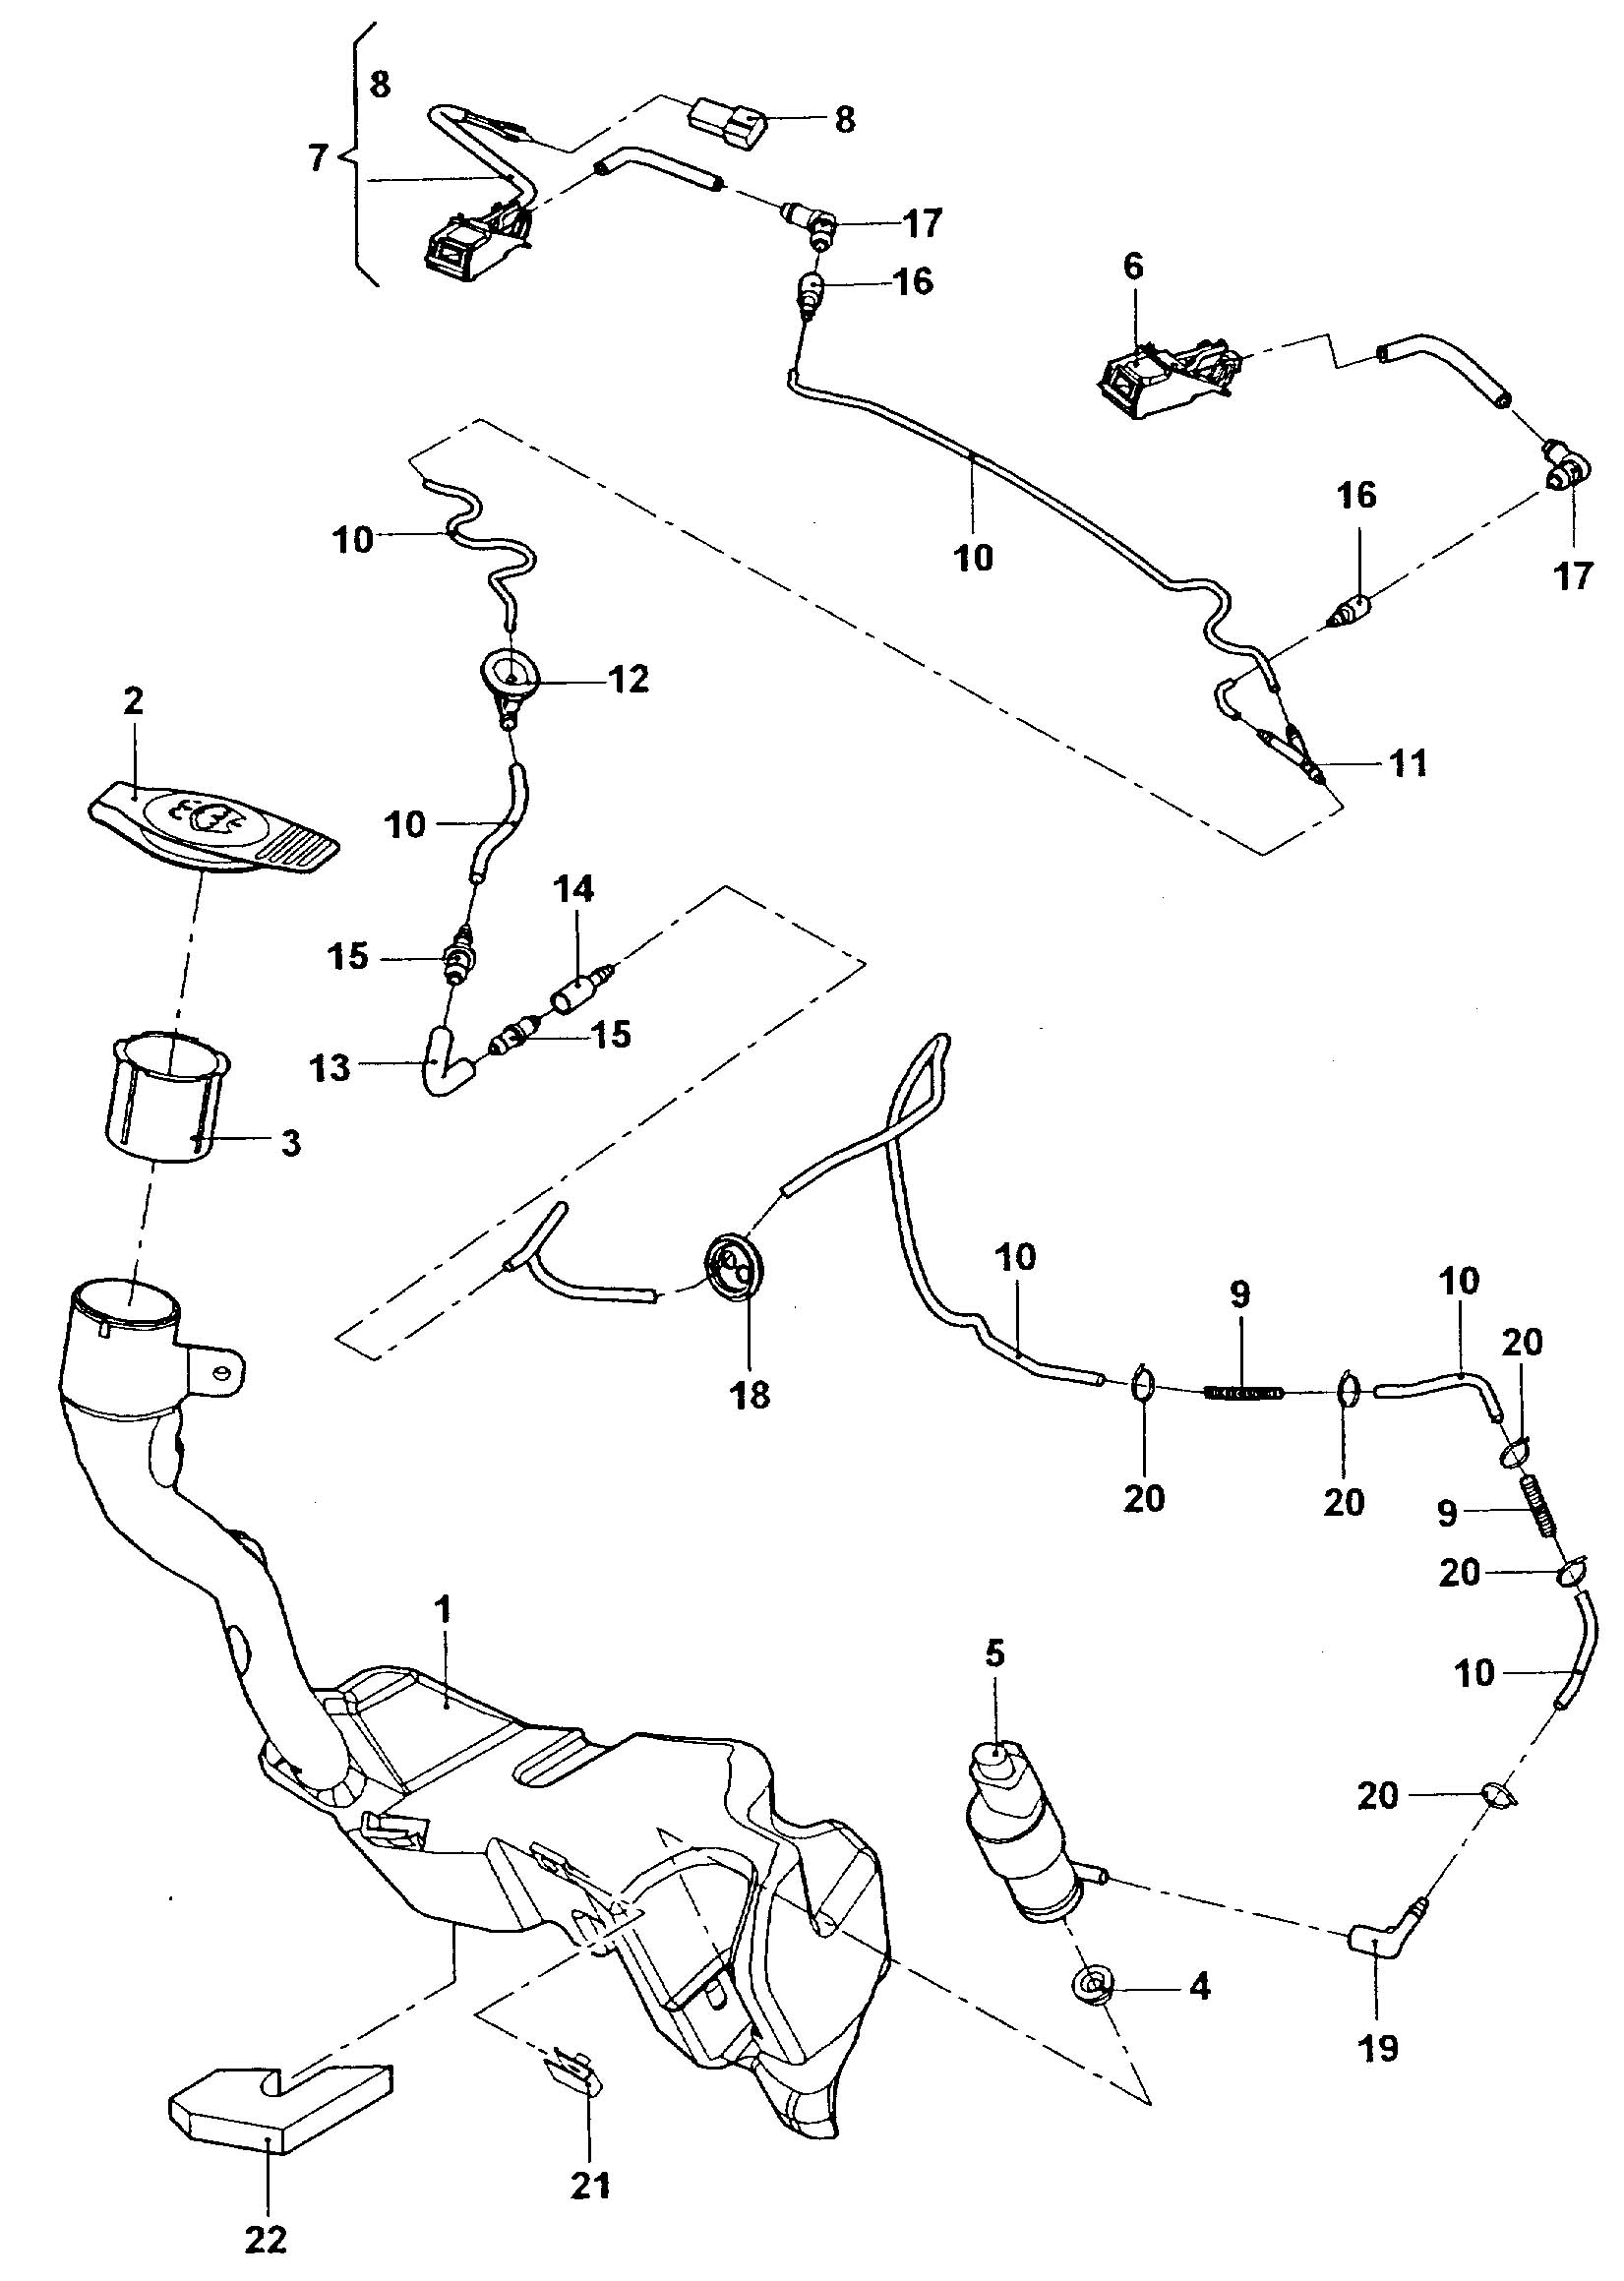 Vw Gti Mk3 Engine Diagram And Wiring Volkswagen Rabbit Mk4 Golf Fuel Pump Together With In Addition 47wui Cabrio Timing Belt